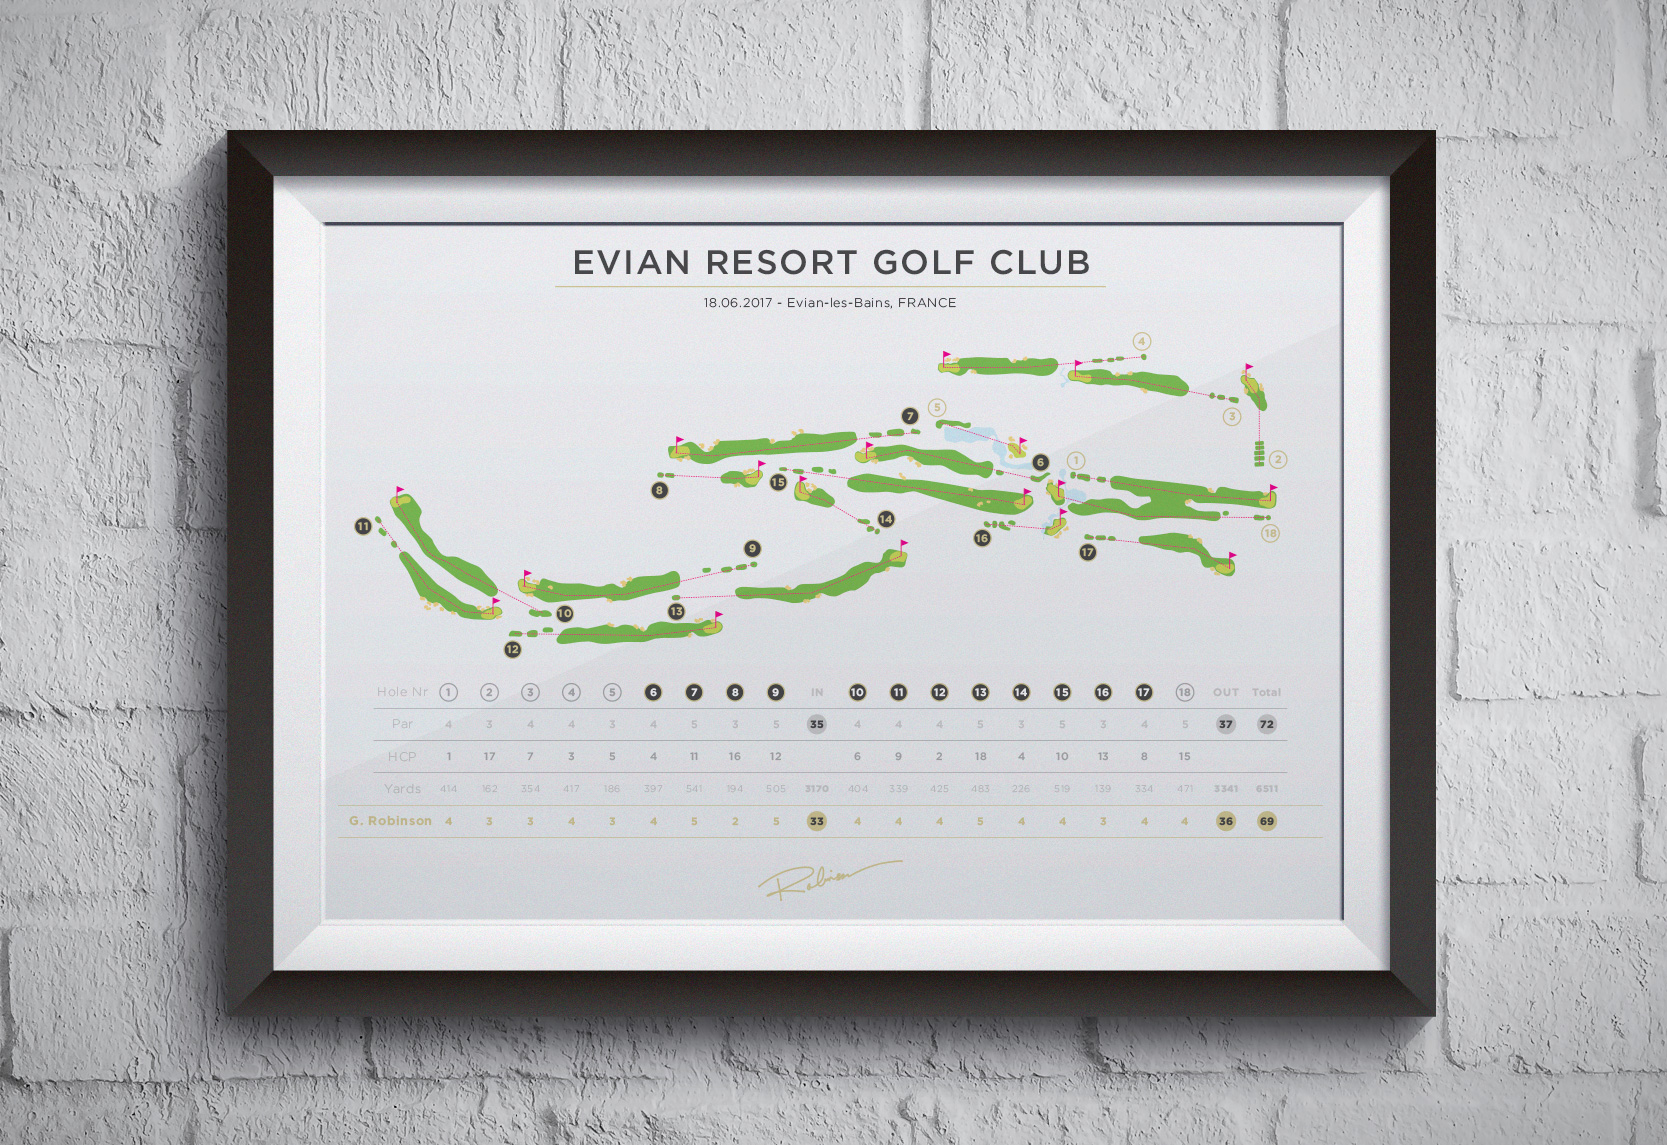 Thirds version of the Evian Resort golf course map